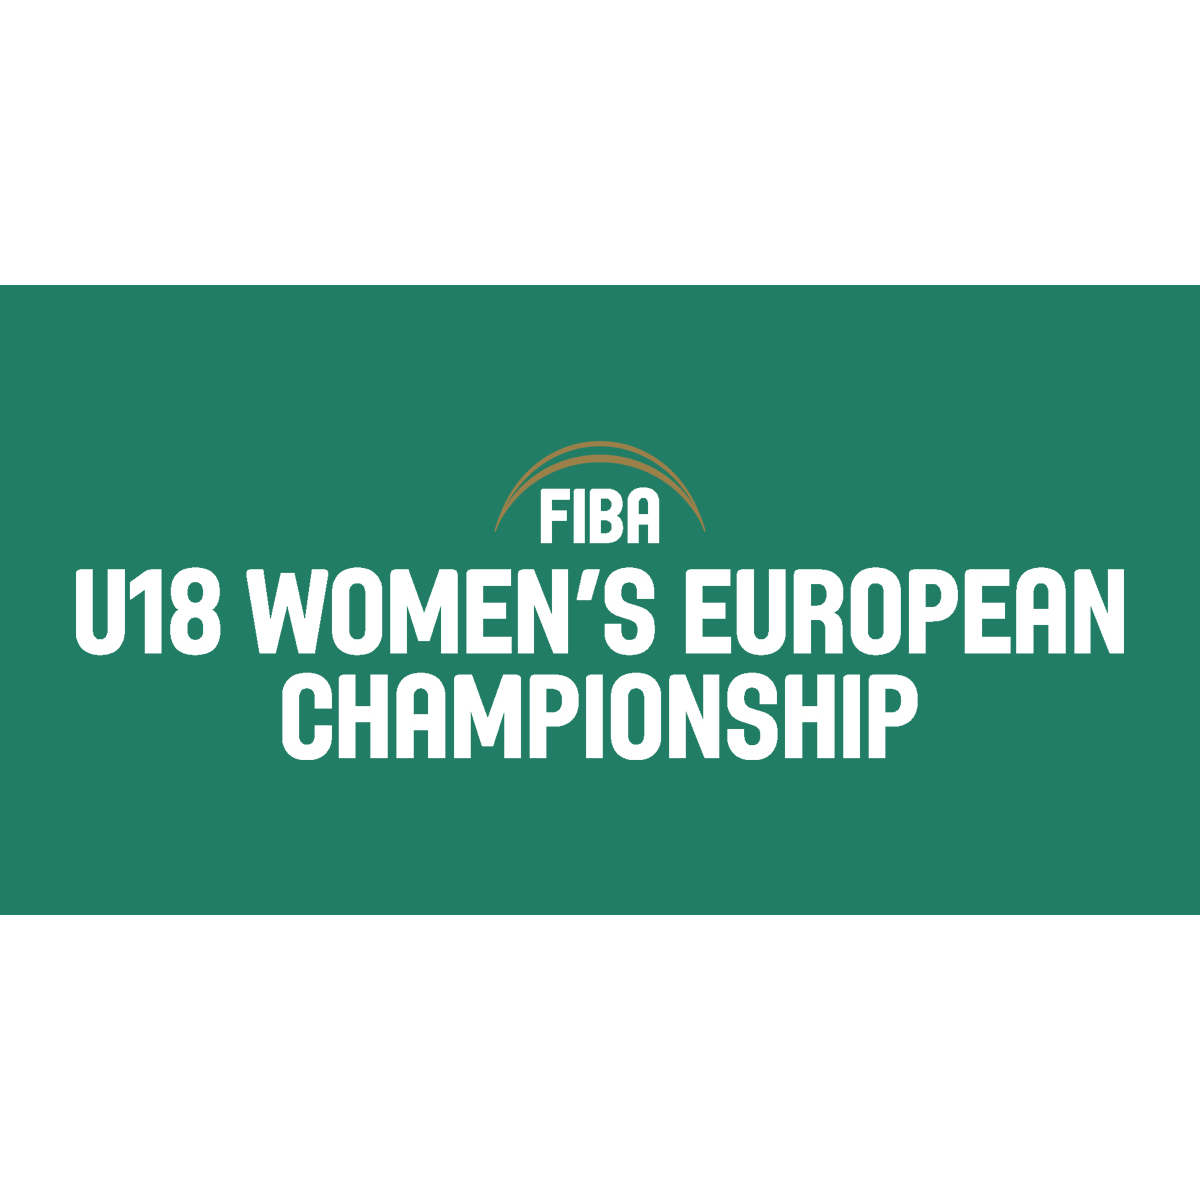 2013 FIBA U18 Women's European Basketball Championship